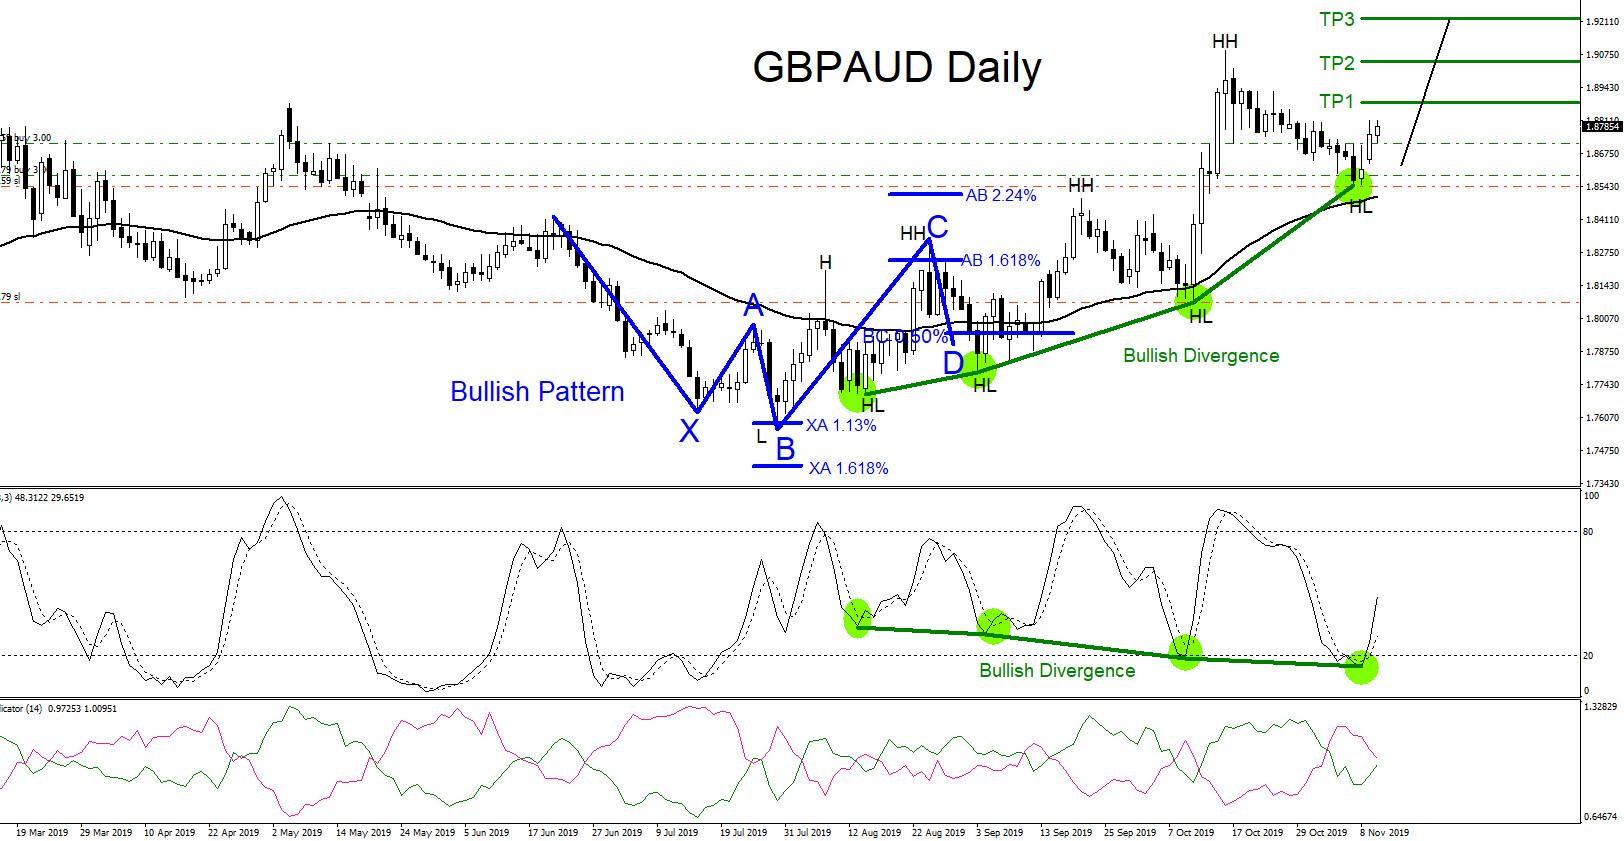 GBPAUD : Calling the 800 Pip Rally Higher